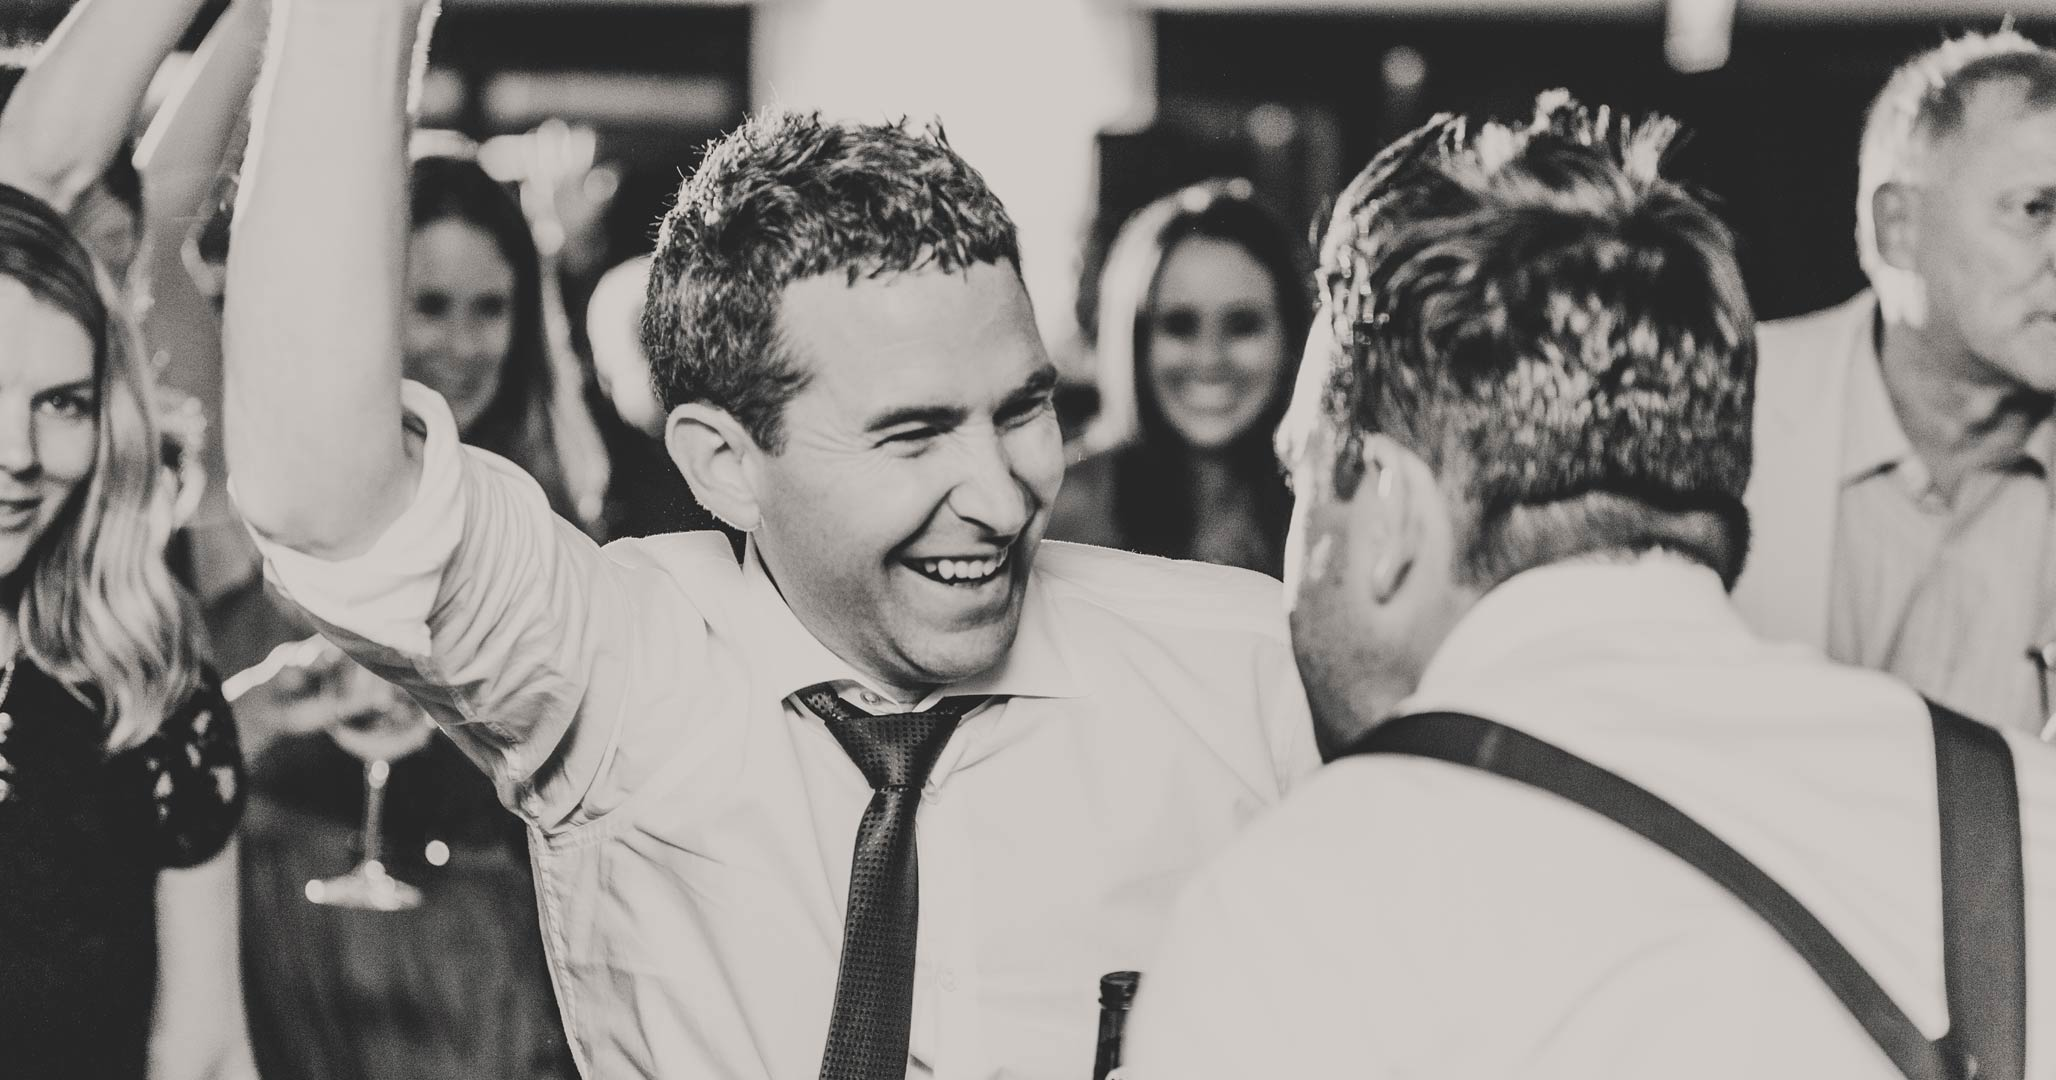 groom-dancing-wedding-photo-chicago-hits